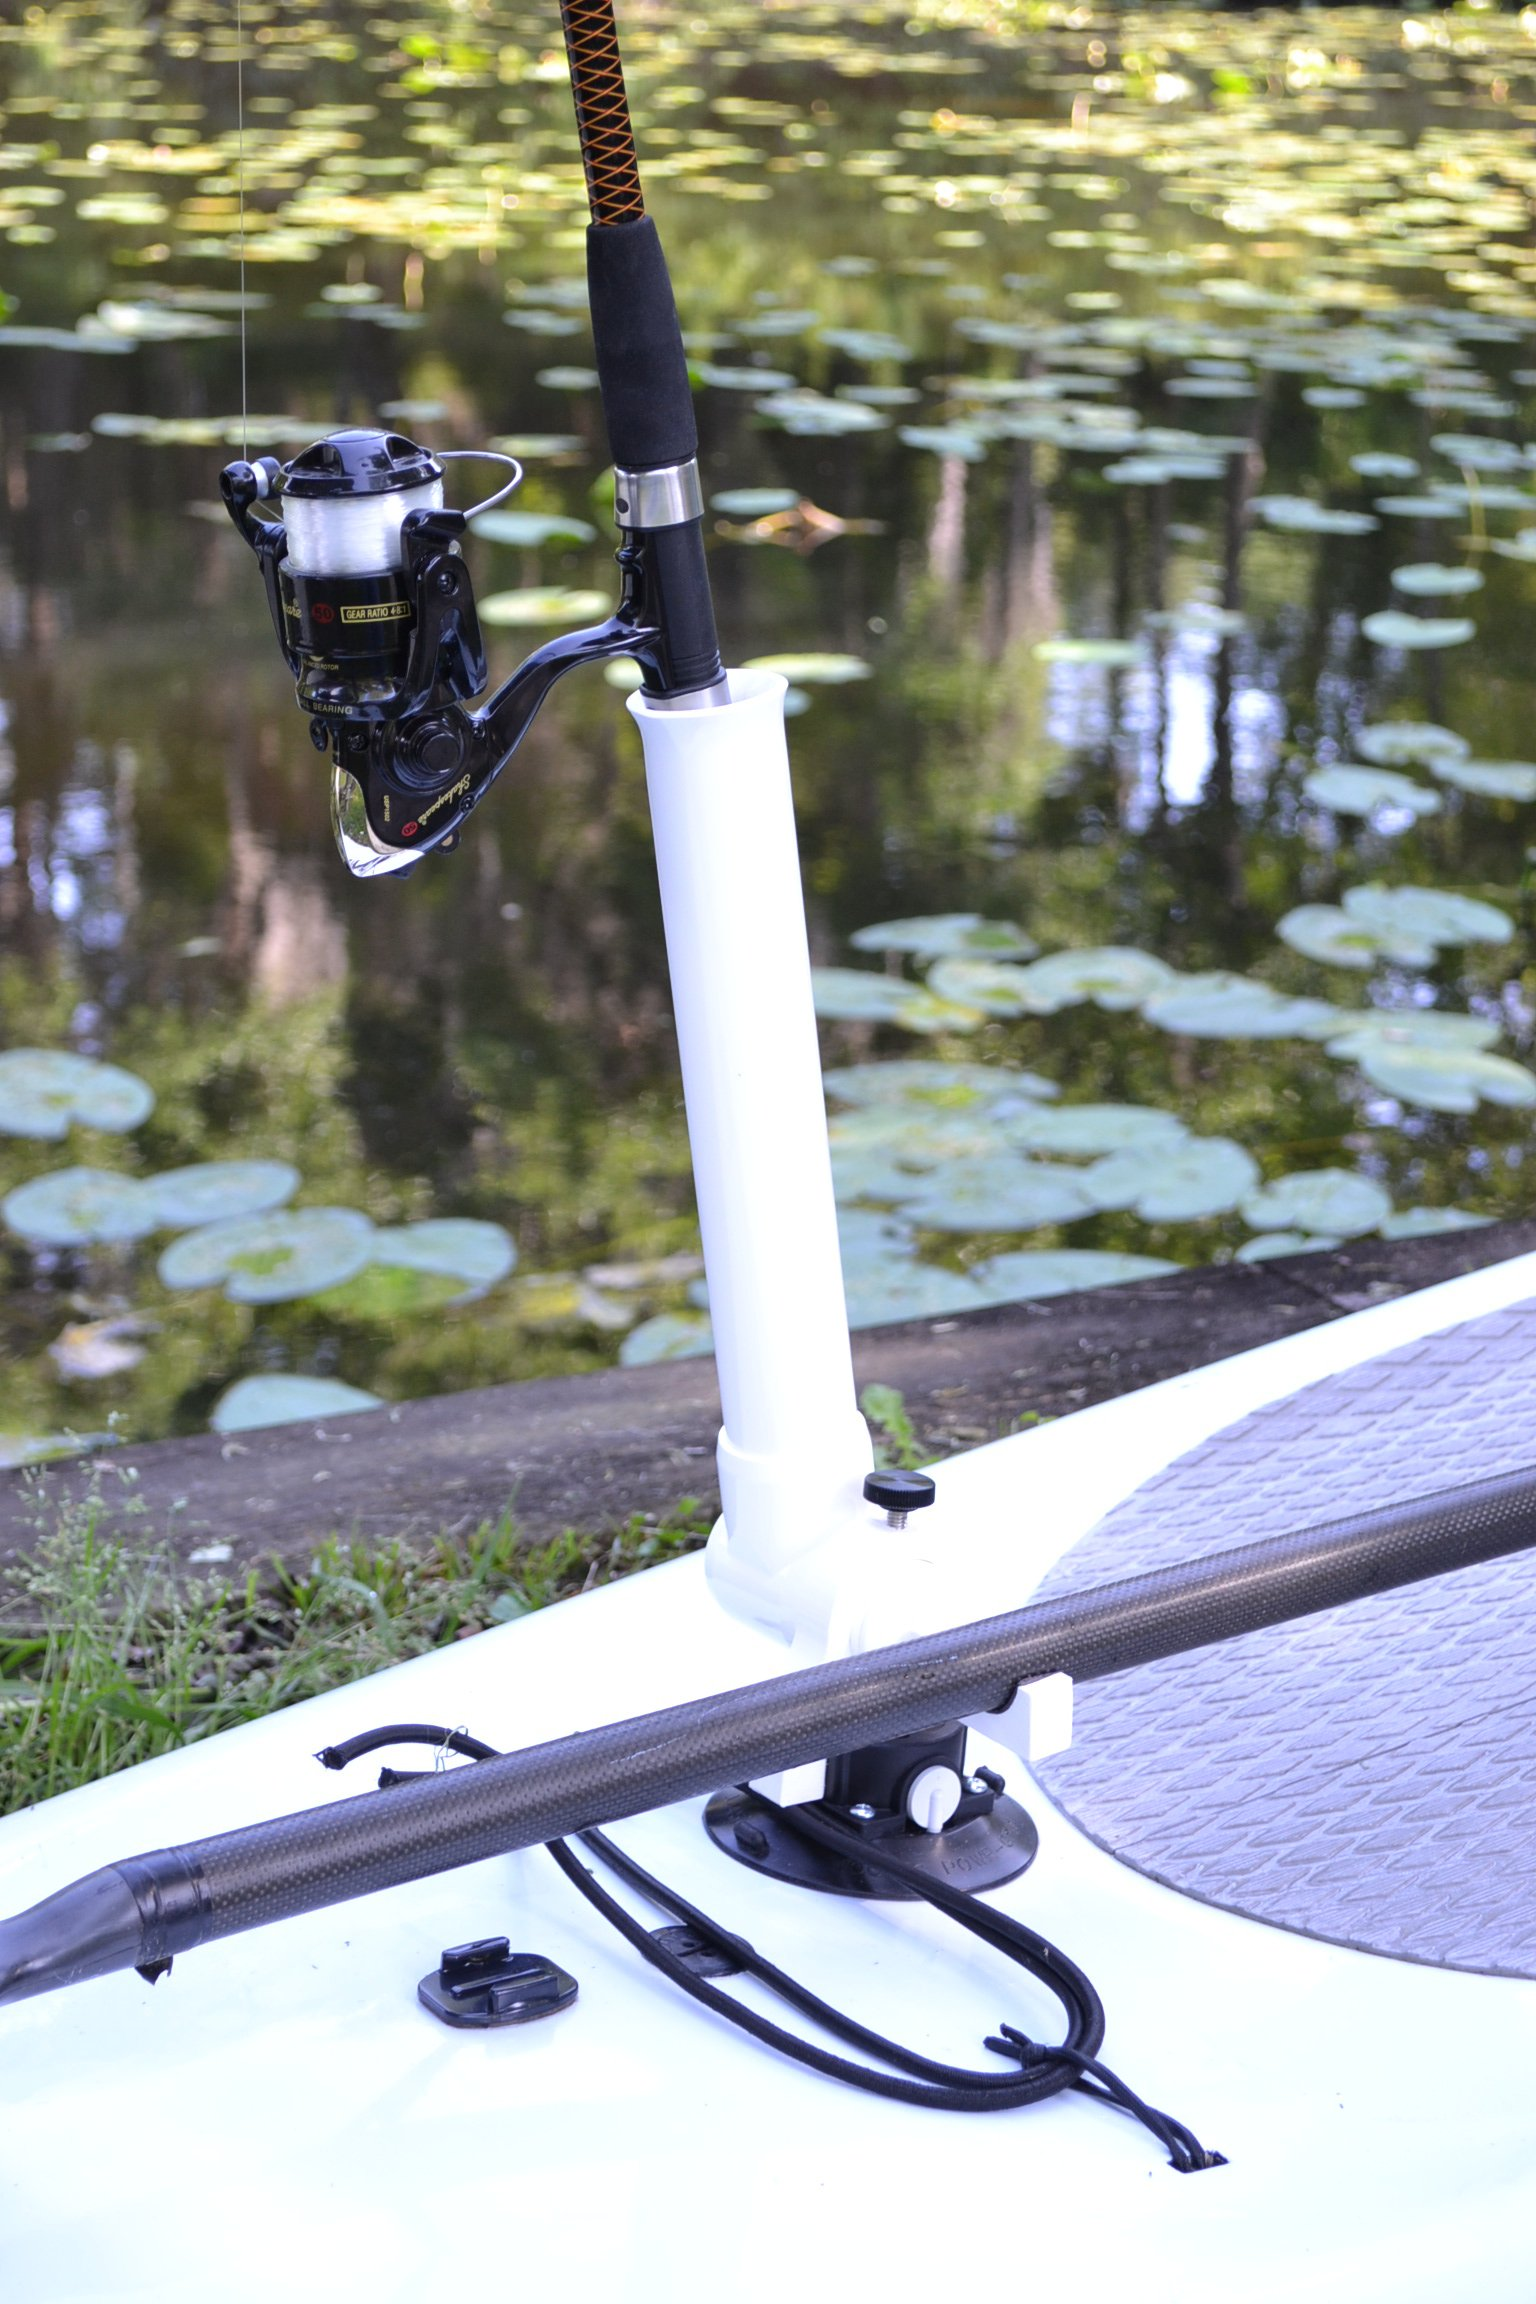 VersaRod SUP Paddleboard Rod Holder by VersaRod